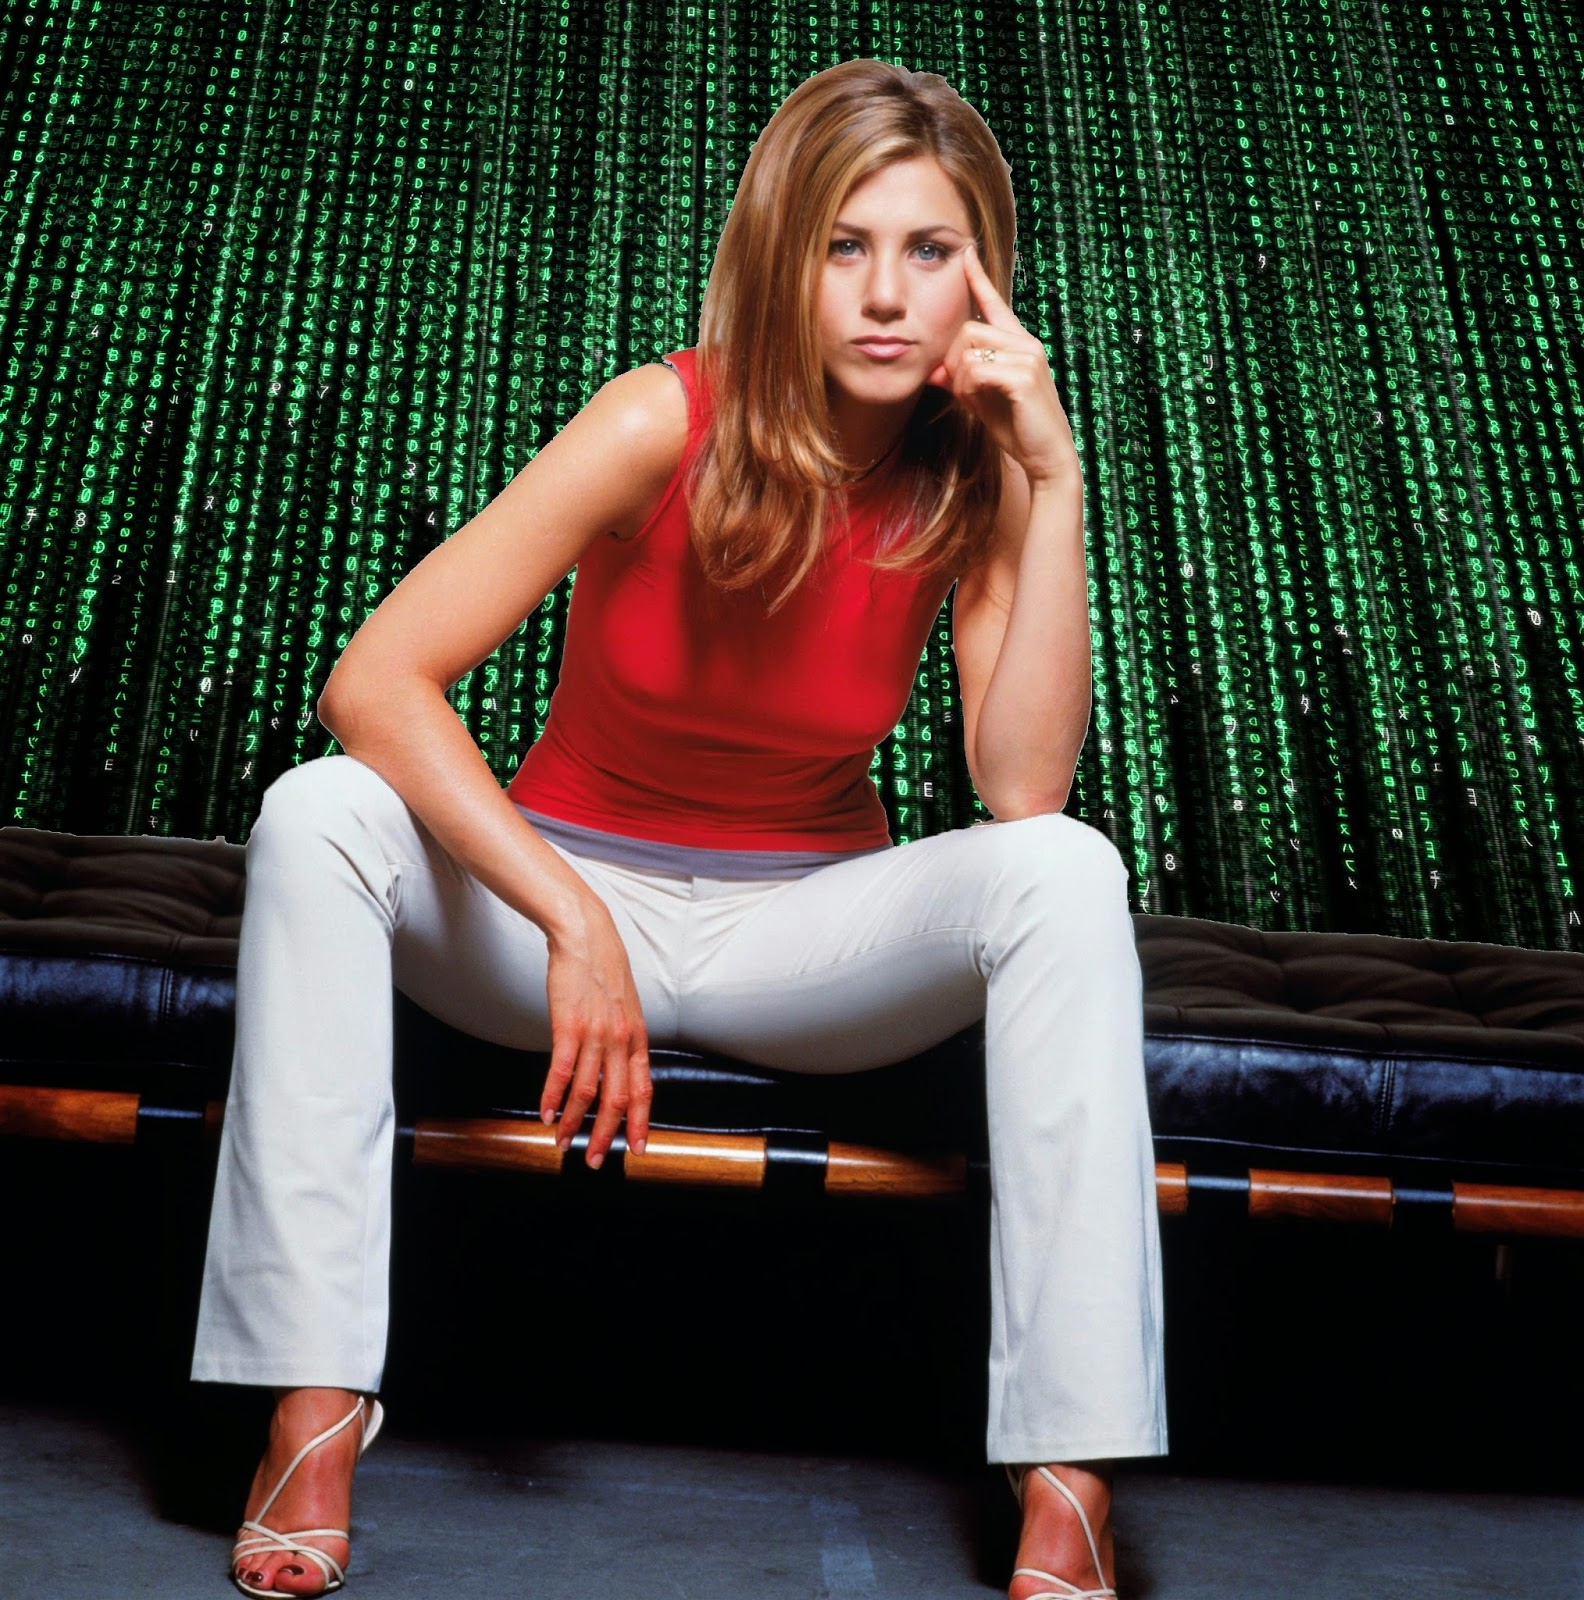 Jennifer+Aniston+Hd+Wallpapers+Free+Down